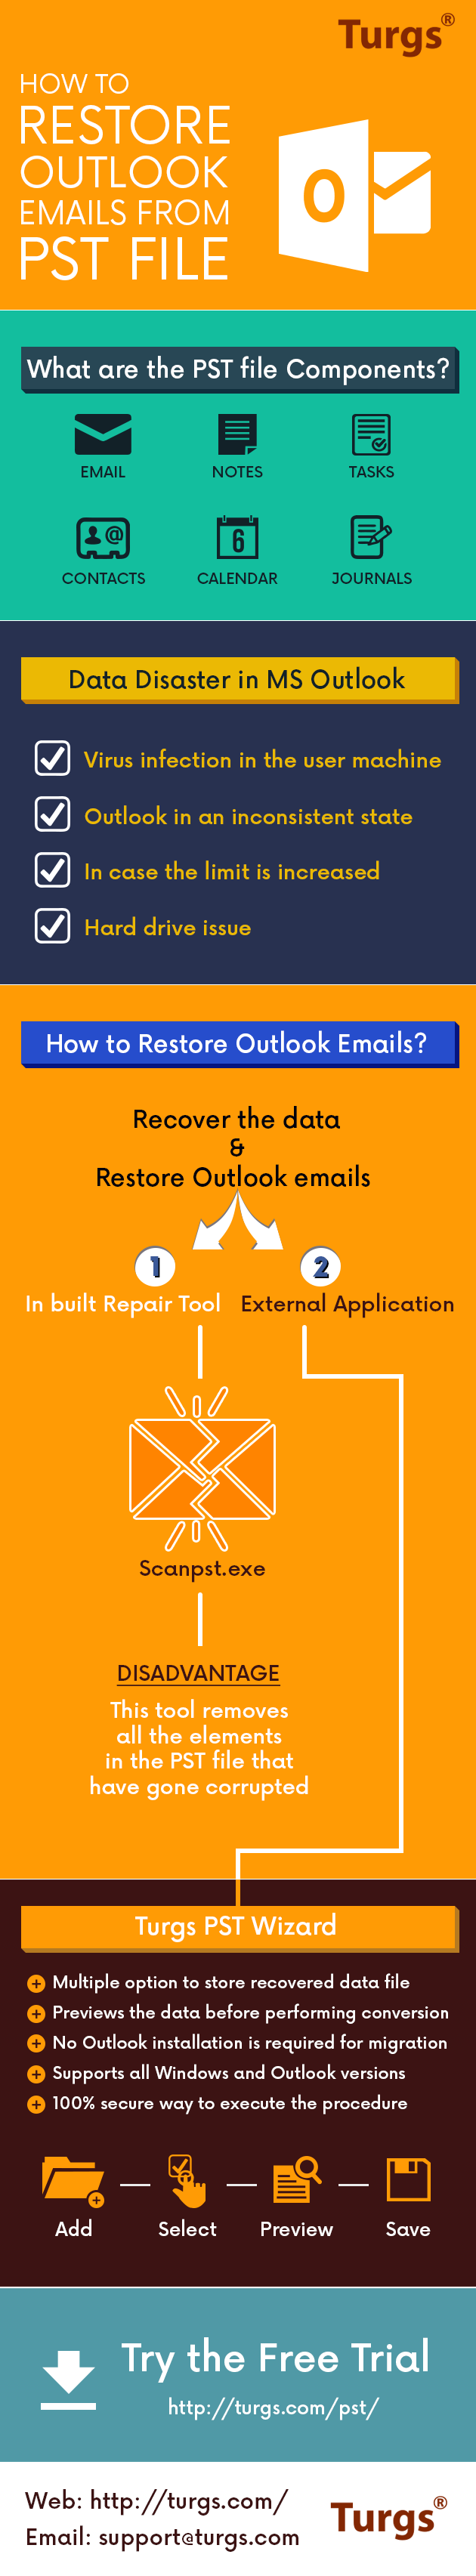 Restore Outlook Emails from PST File Completely